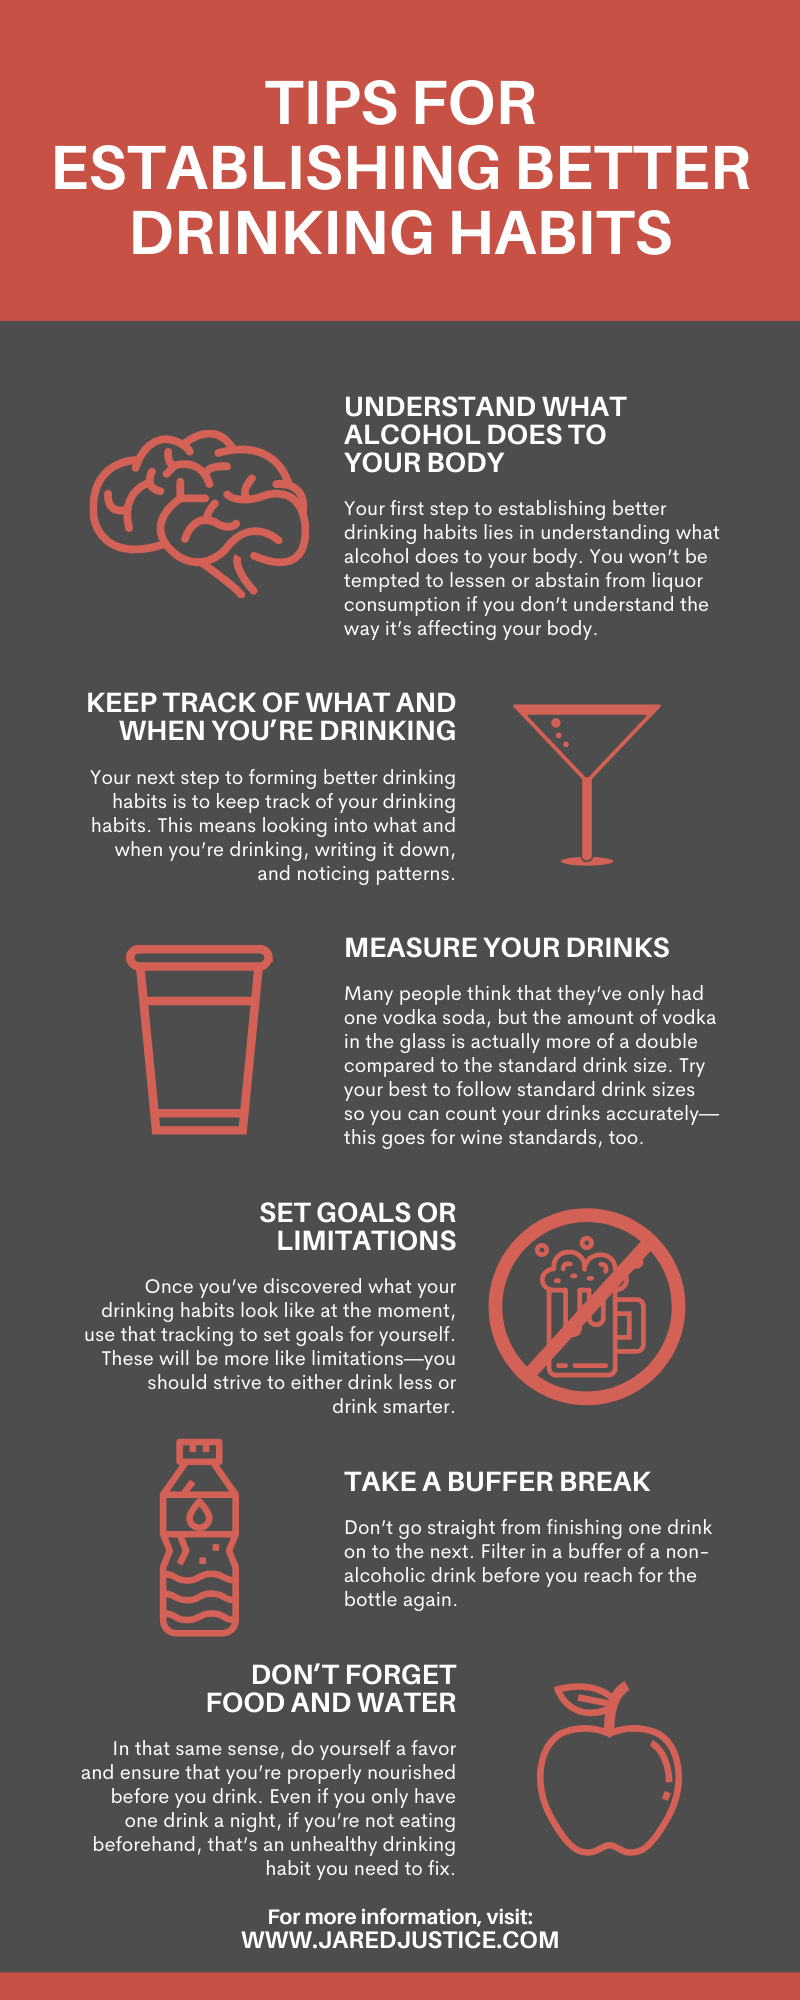 Tips for Establishing Better Drinking Habits